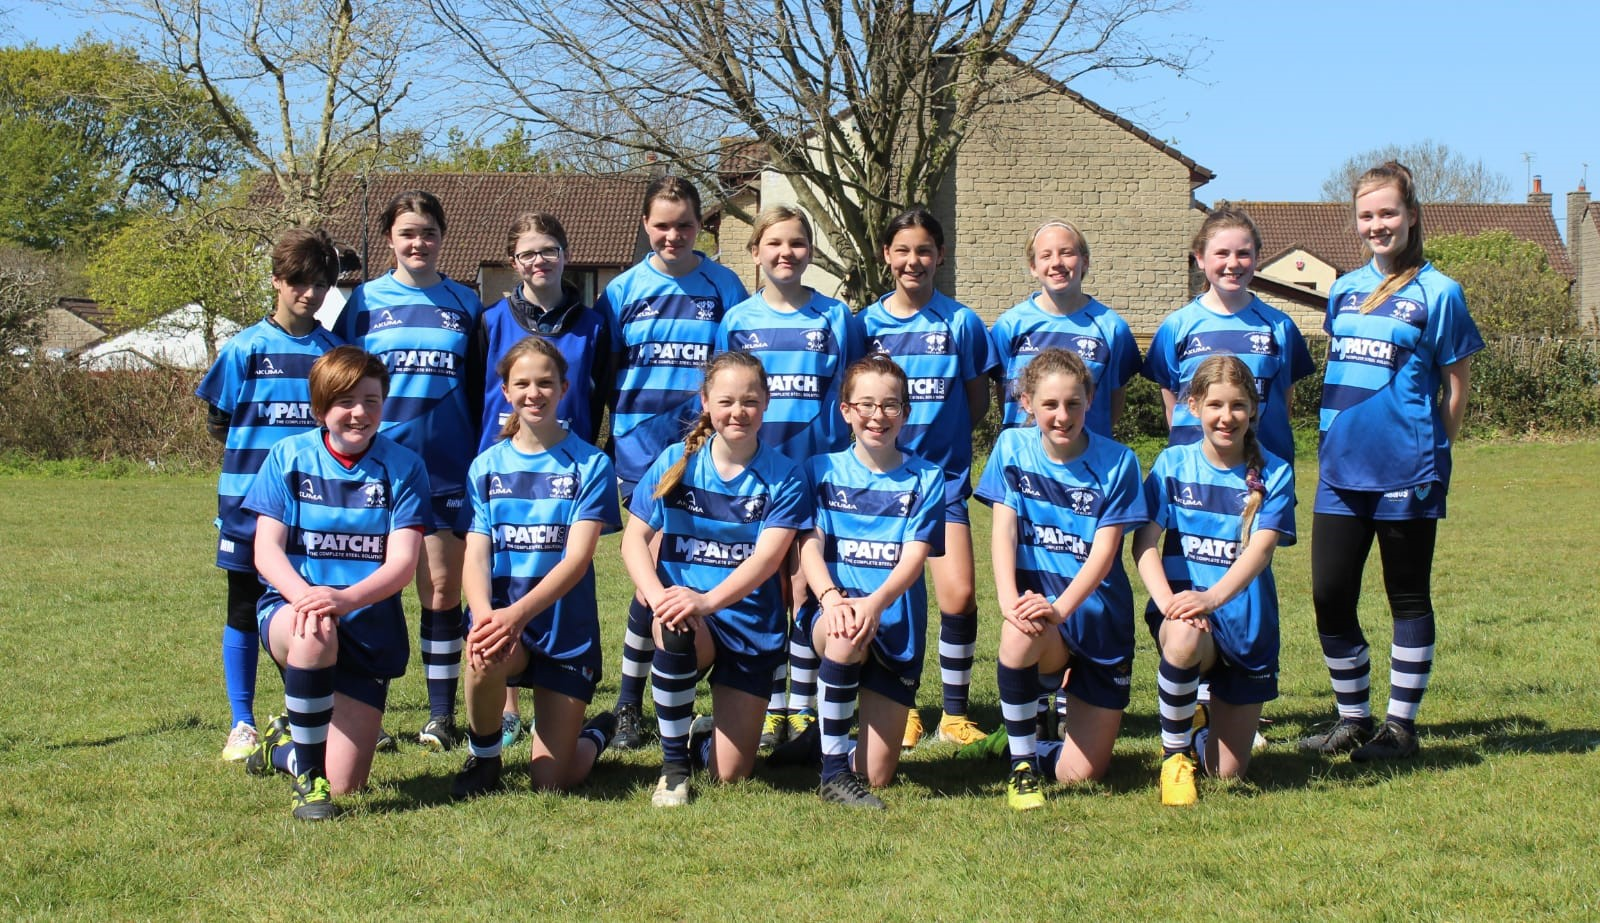 MJ Patch Proudly Sponsor the Cheddar & Weston Roses U13's!